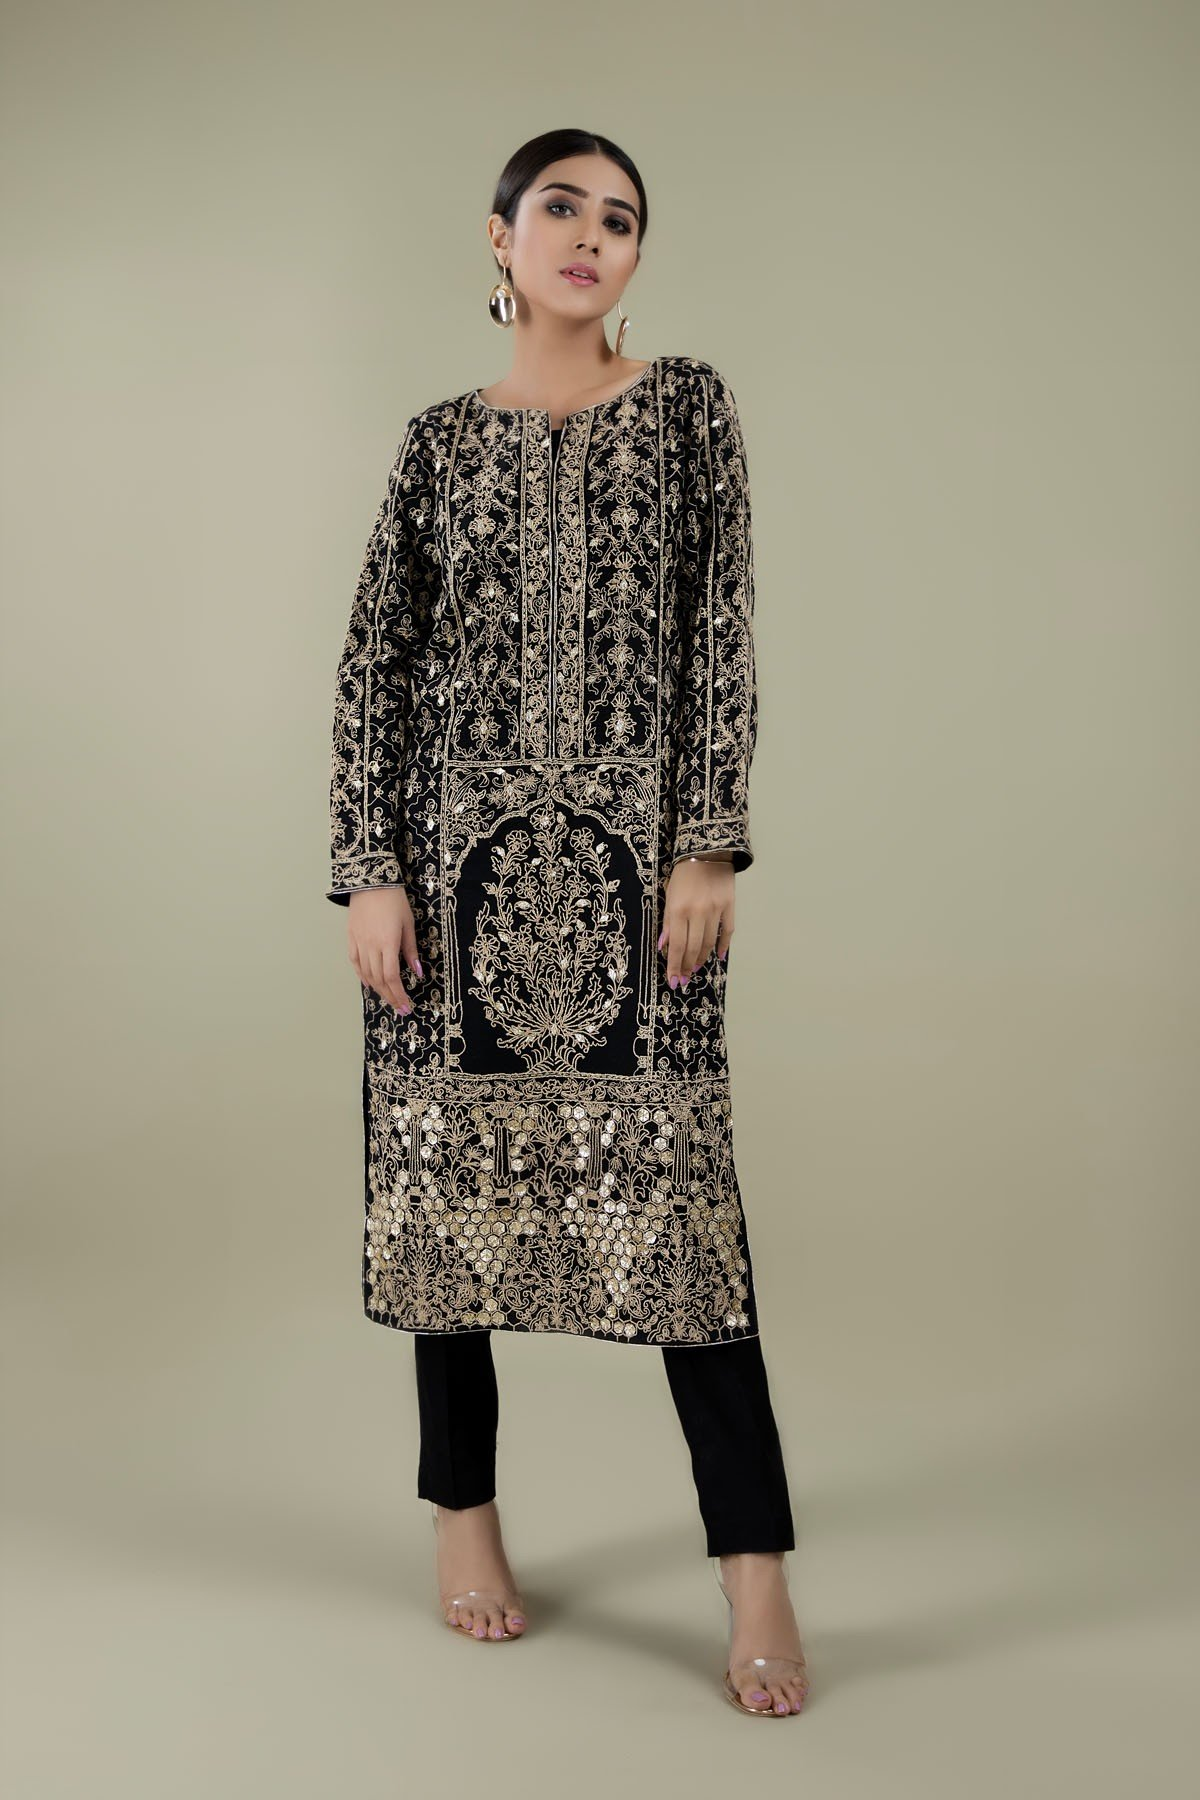 2 Pc Suit - Embroidered Shirt with Gota work and Solid Trouser